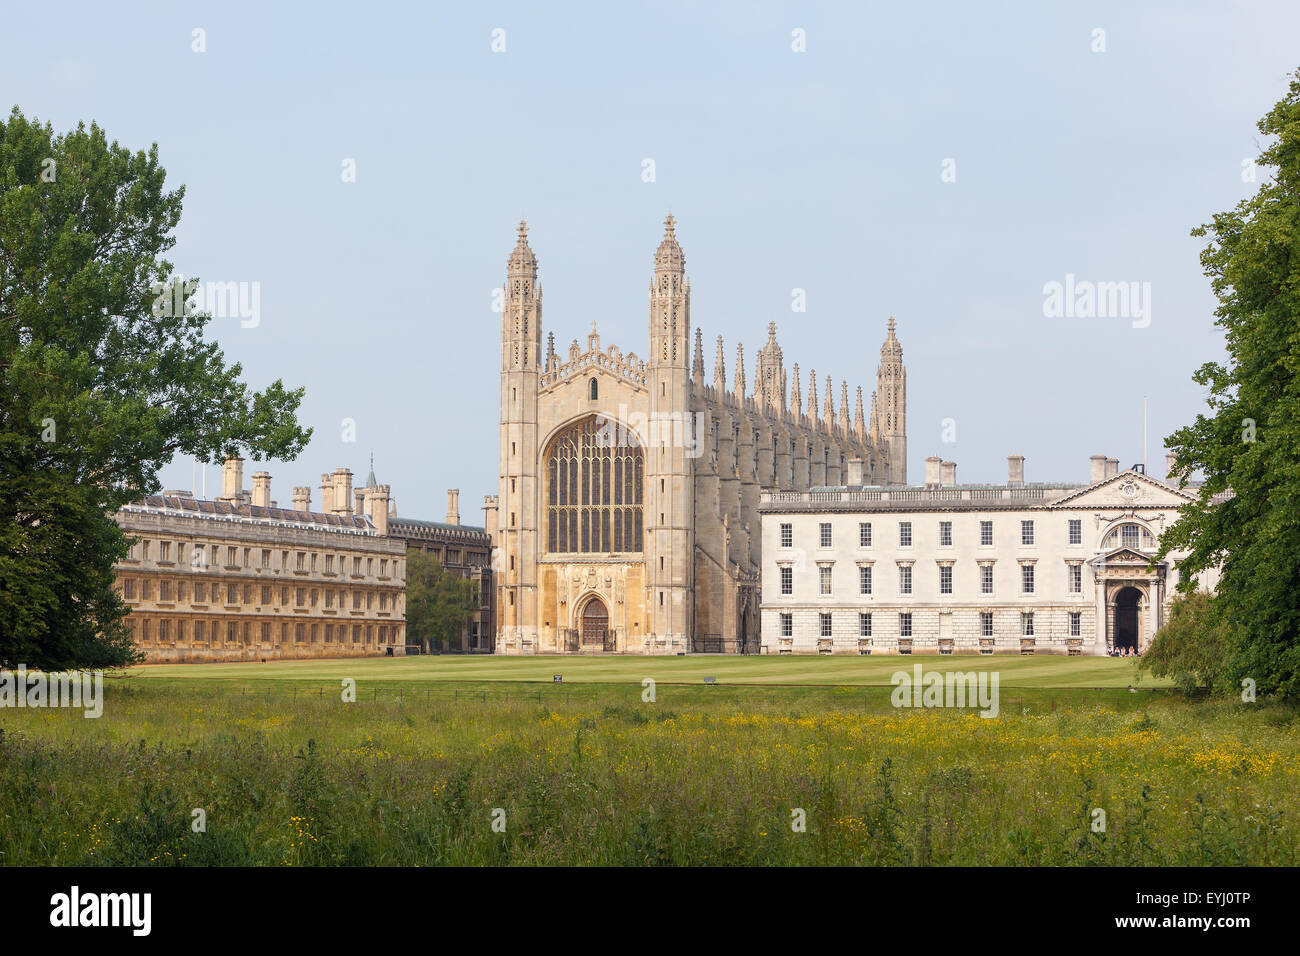 University of Cambridge buildings viewed from the back of the River Cam - Stock Image